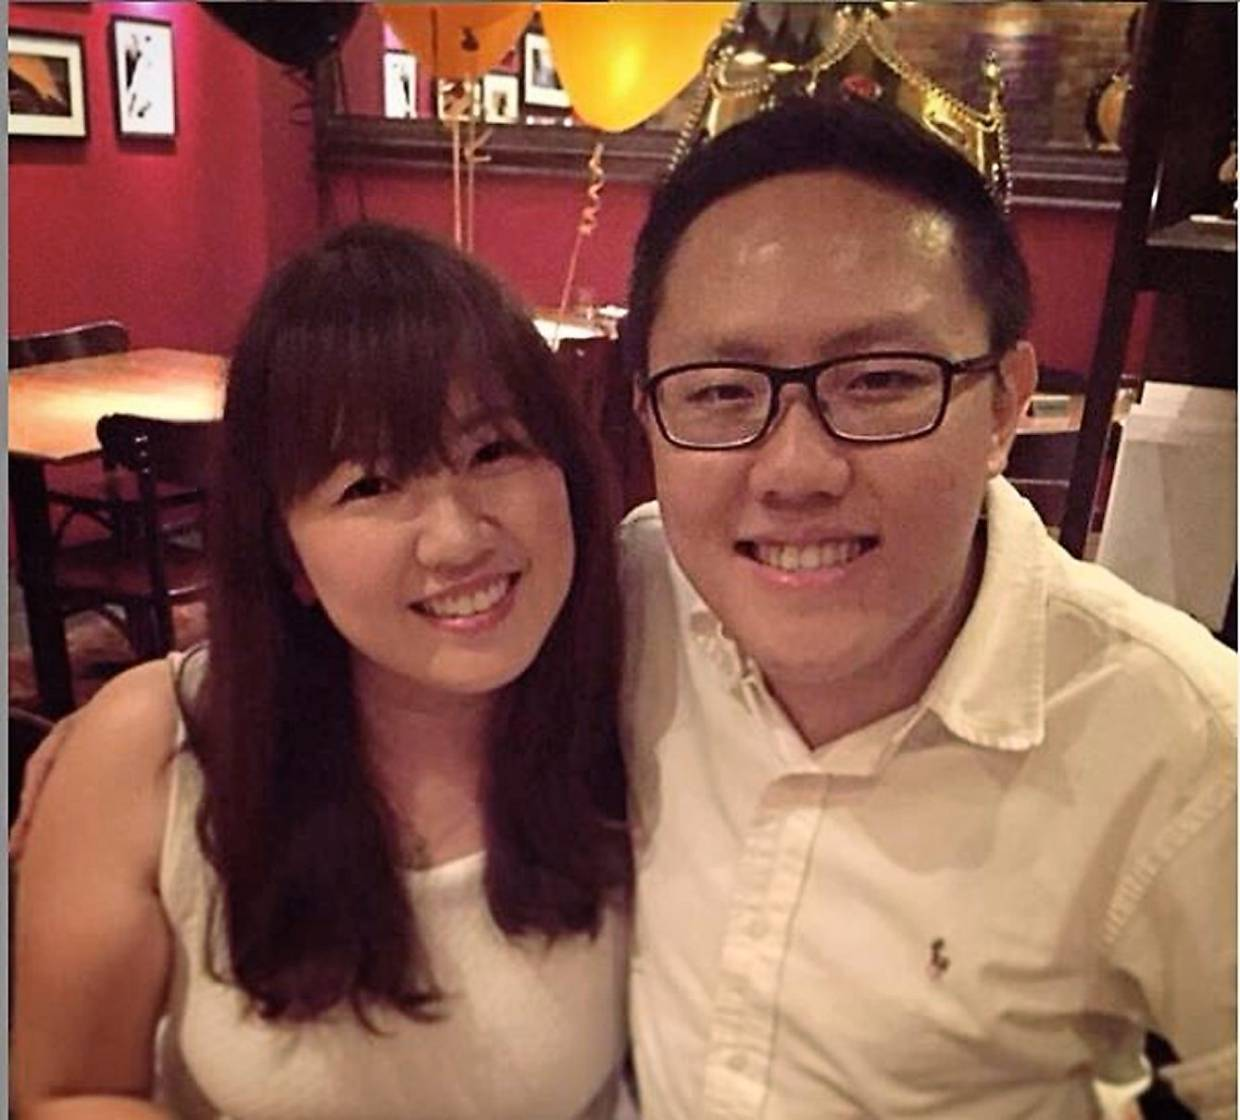 Lim says since meeting his wife, she never misses the chance to celebrate his birthday, regardless of the year.